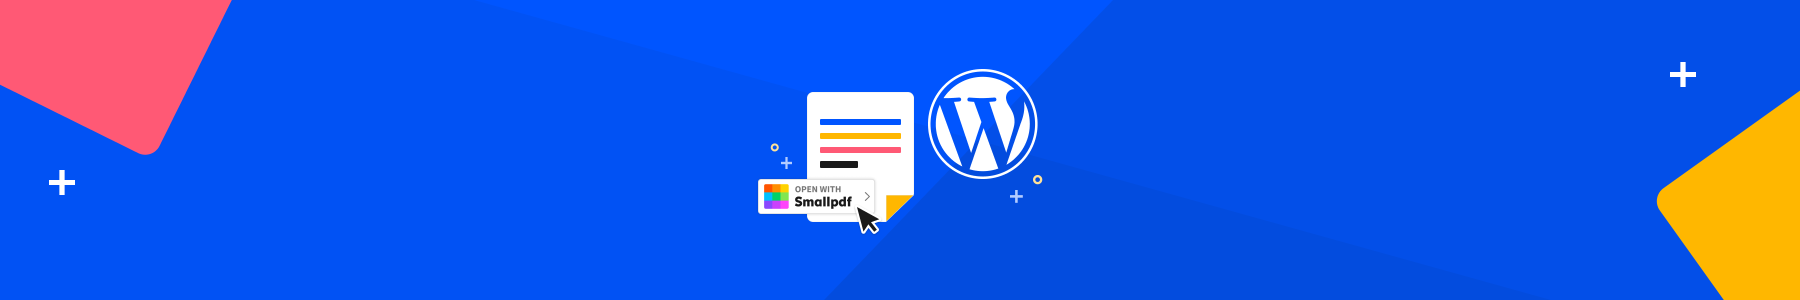 integrer-pdf-wordpress@2x